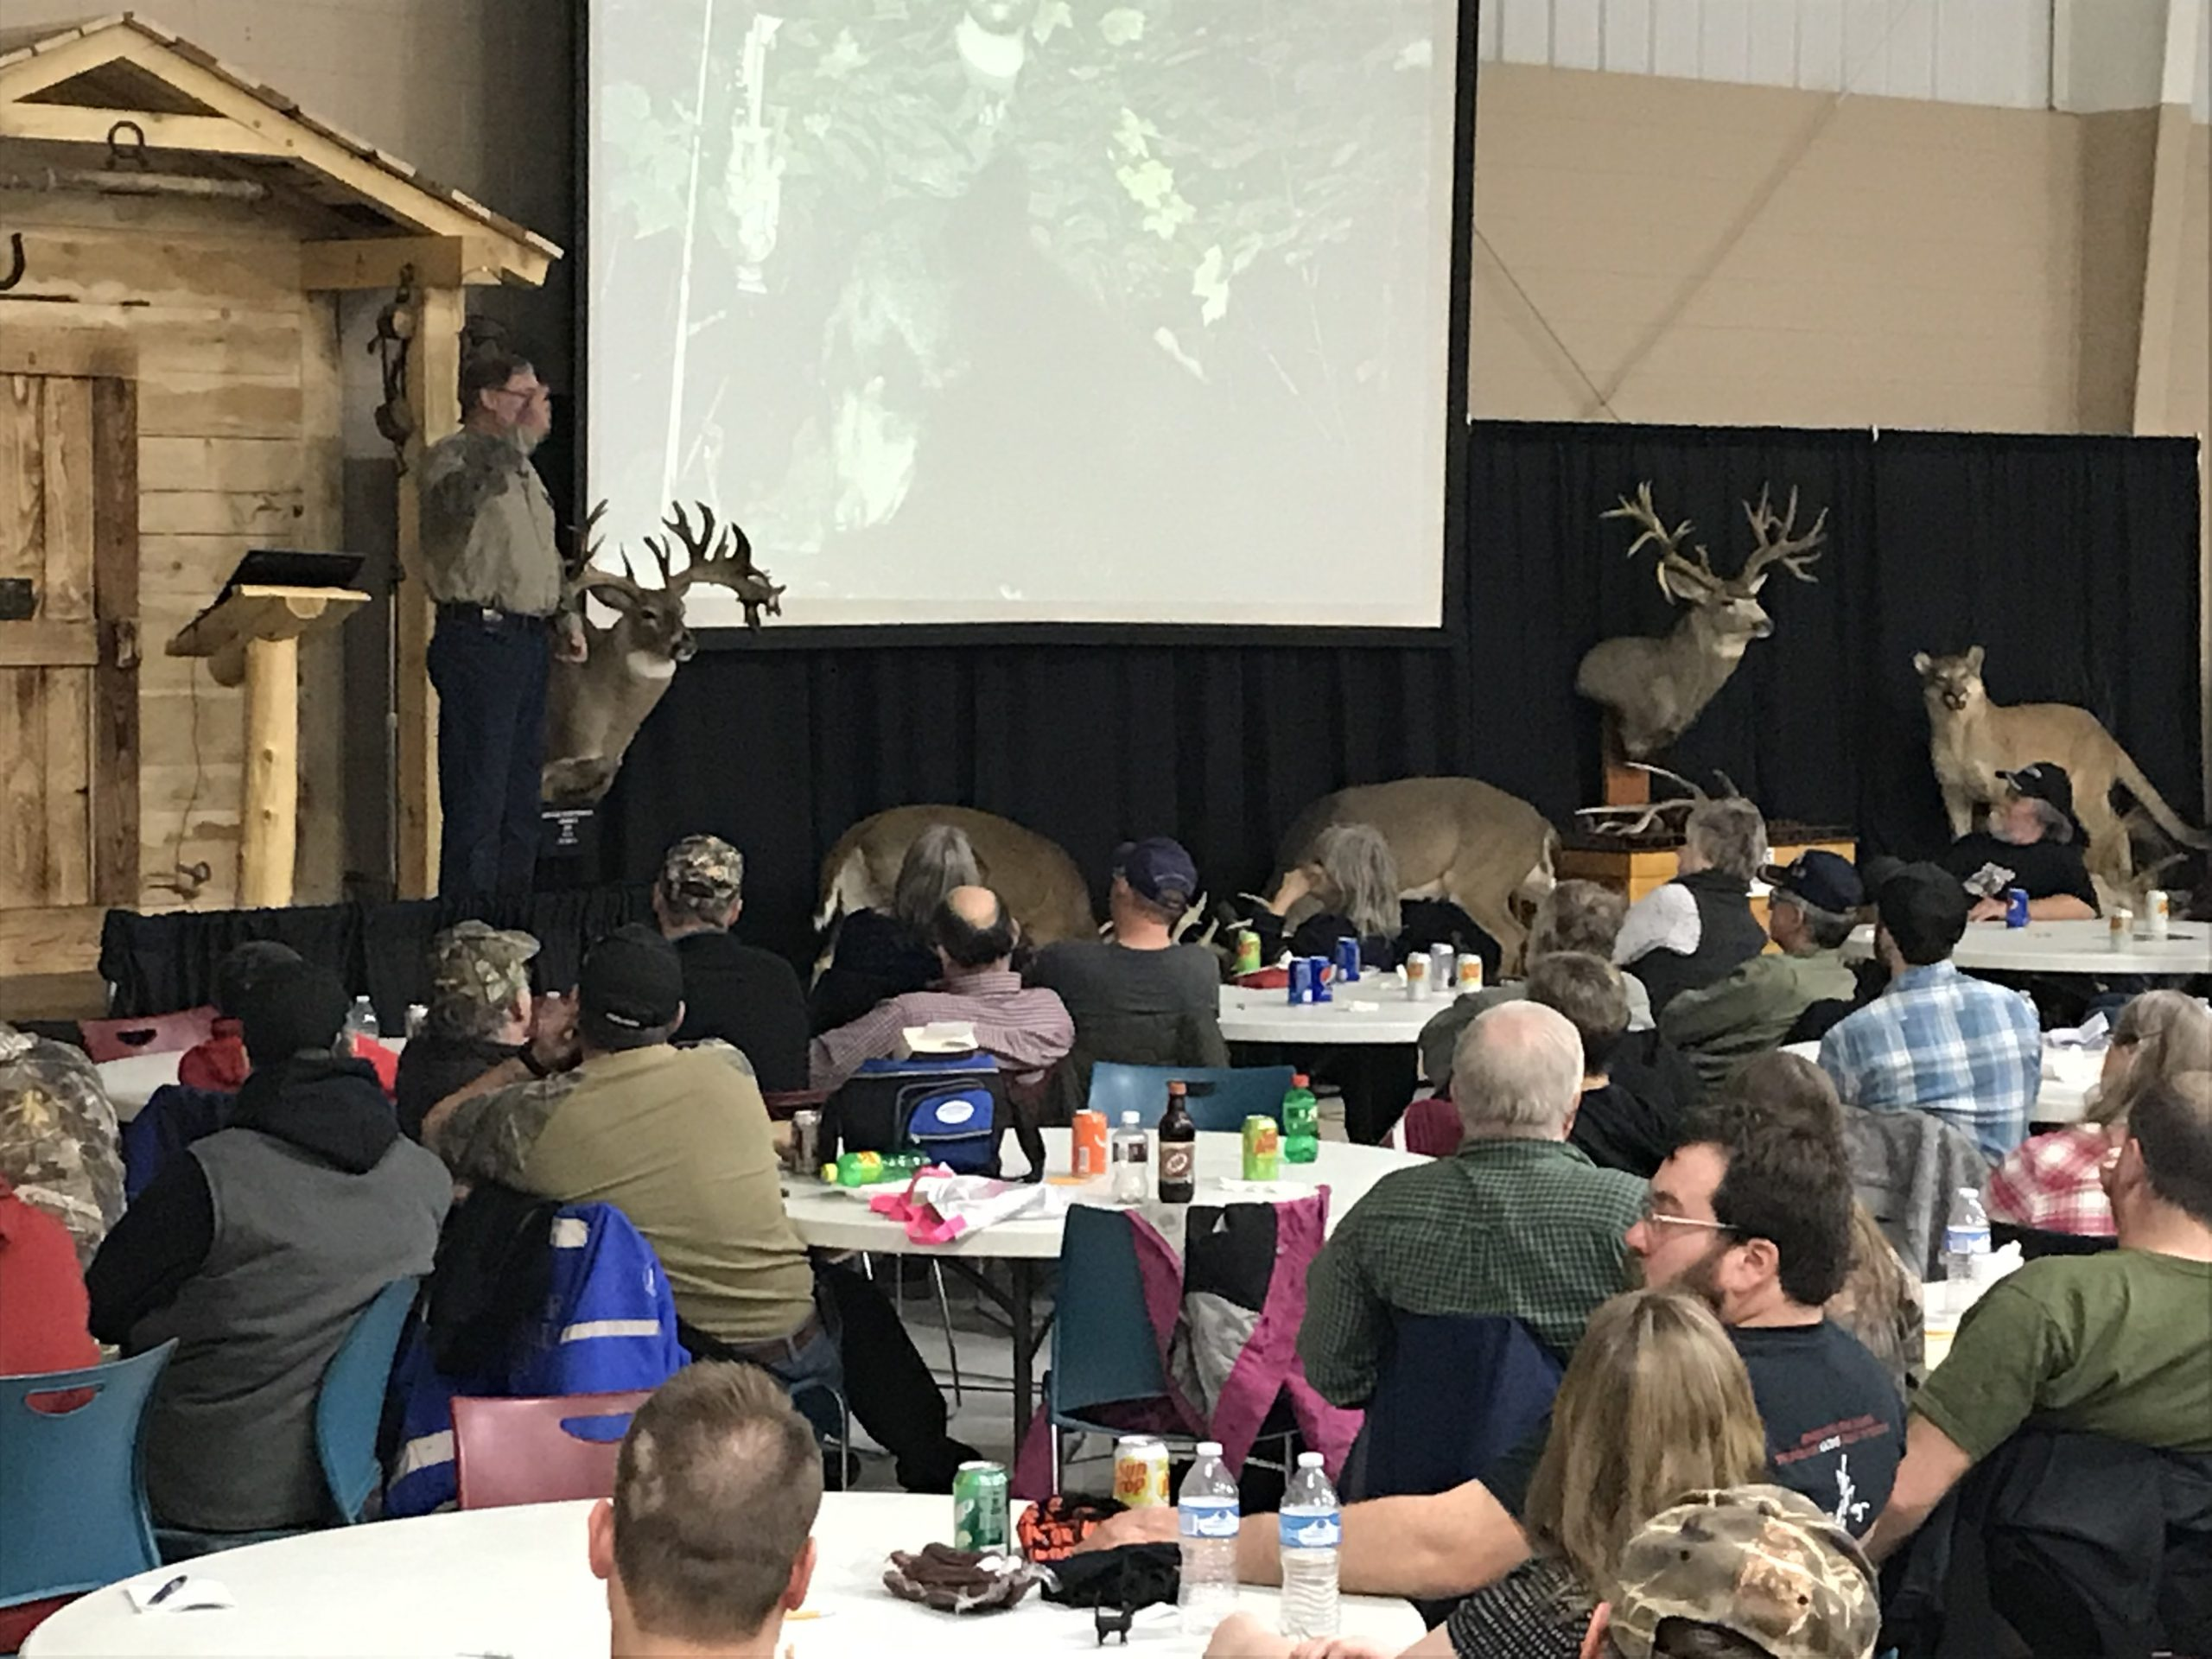 Church Outreach Event for Hunters